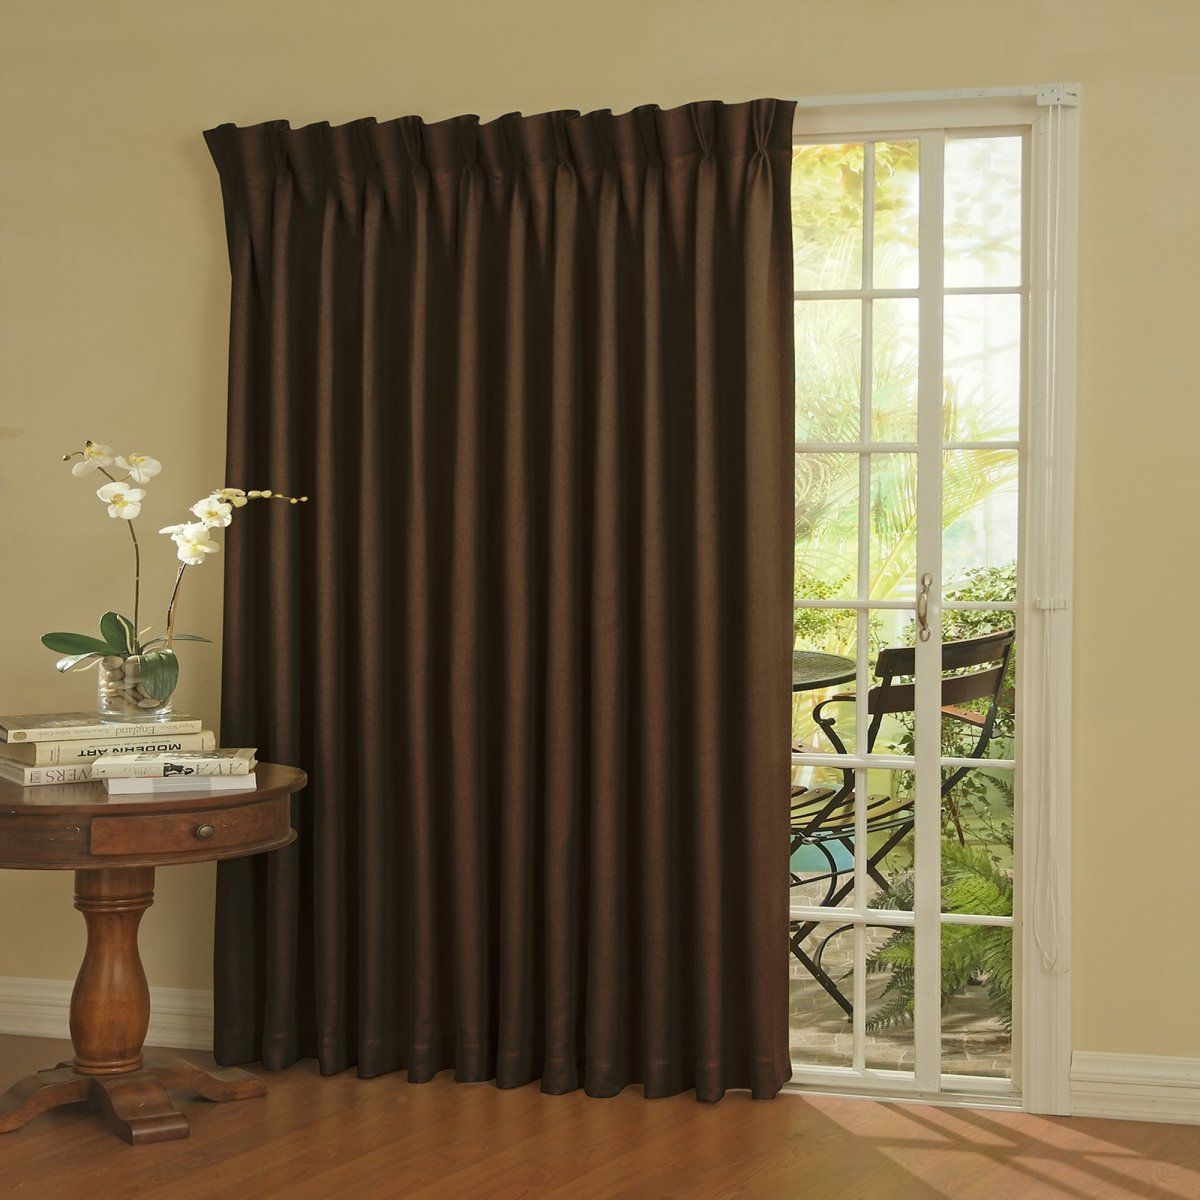 Window coverings for sliders  window covers for sliding glass doors  the thickness of fabric that